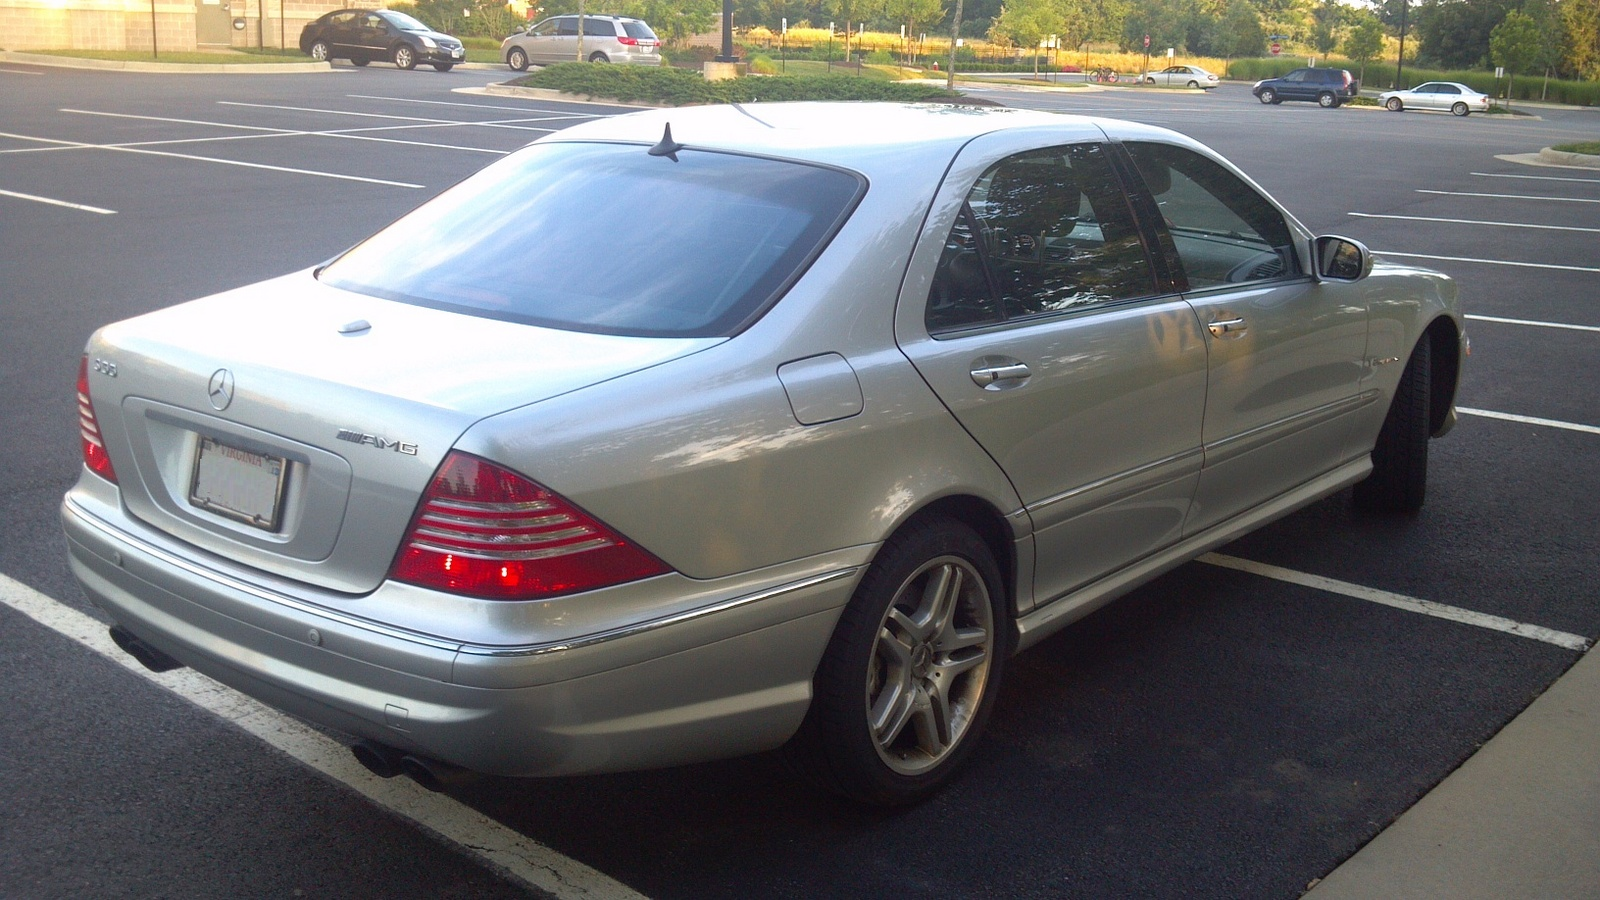 2004 mercedes benz s class pictures cargurus for Mercedes benz s500 amg